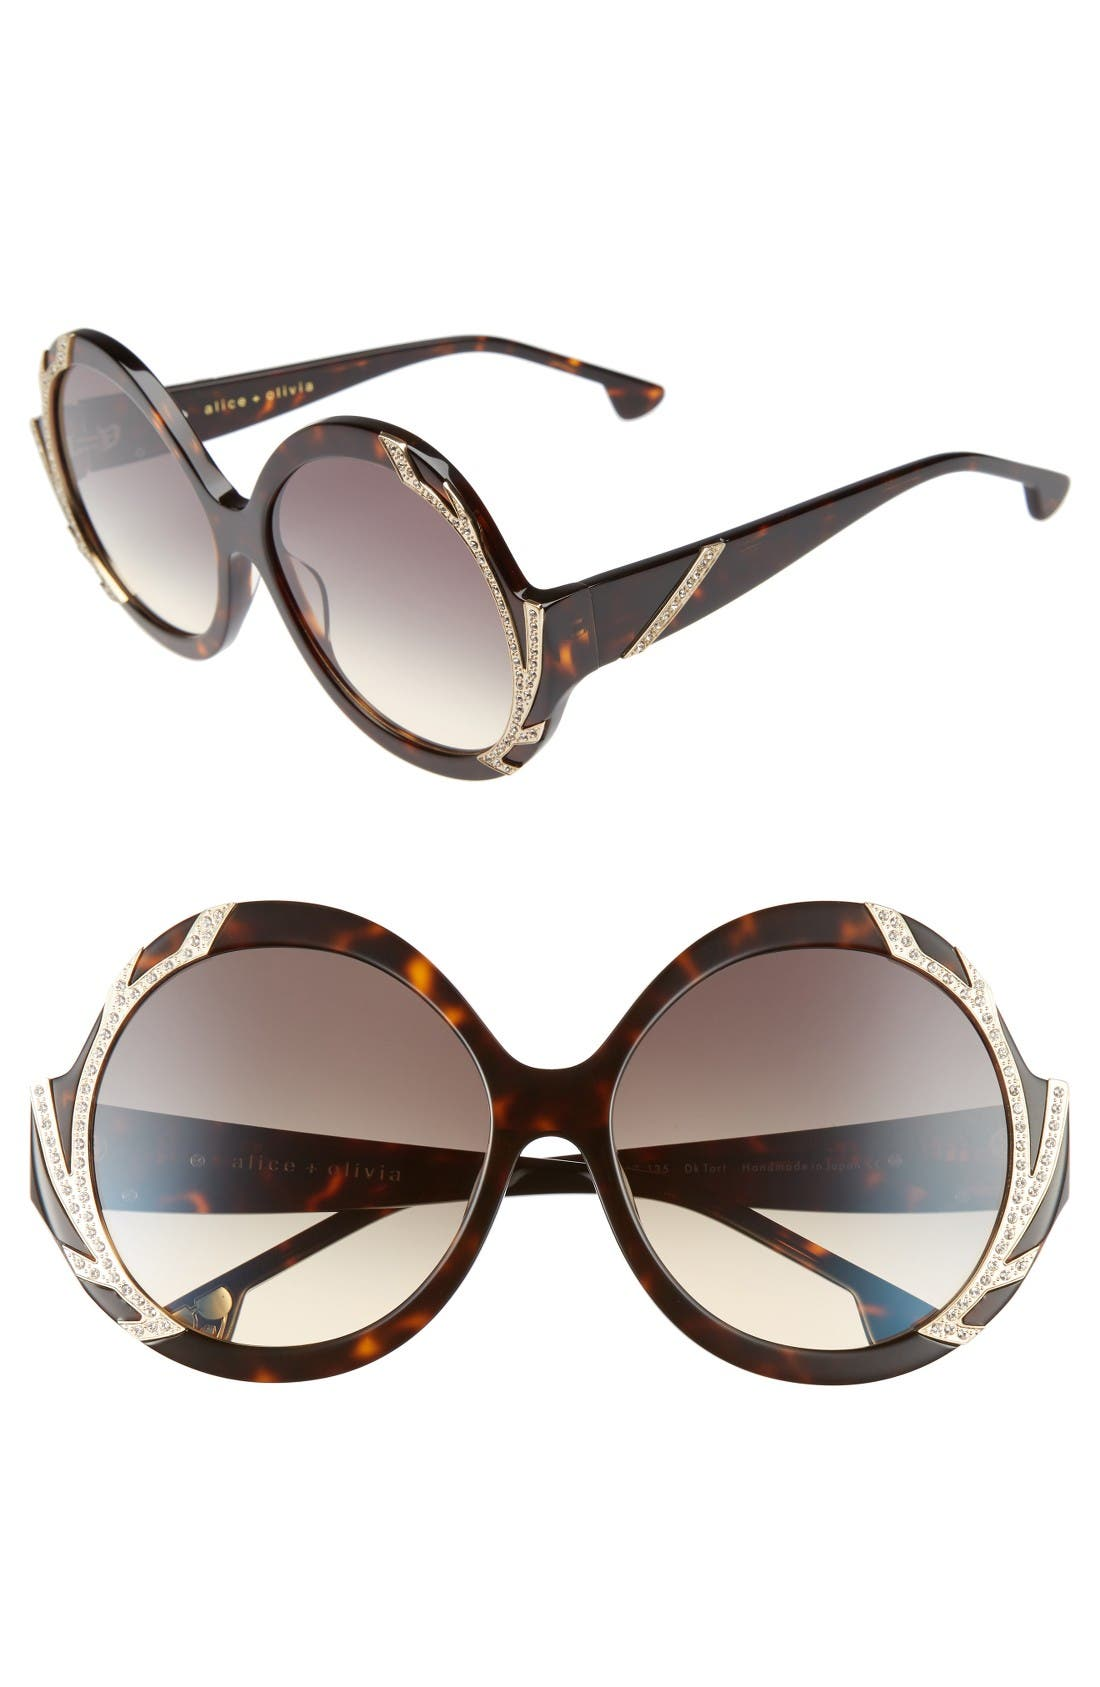 Alternate Image 1 Selected - Alice + Olivia Stacey Crystal 59mm Gradient Lens Round Sunglasses